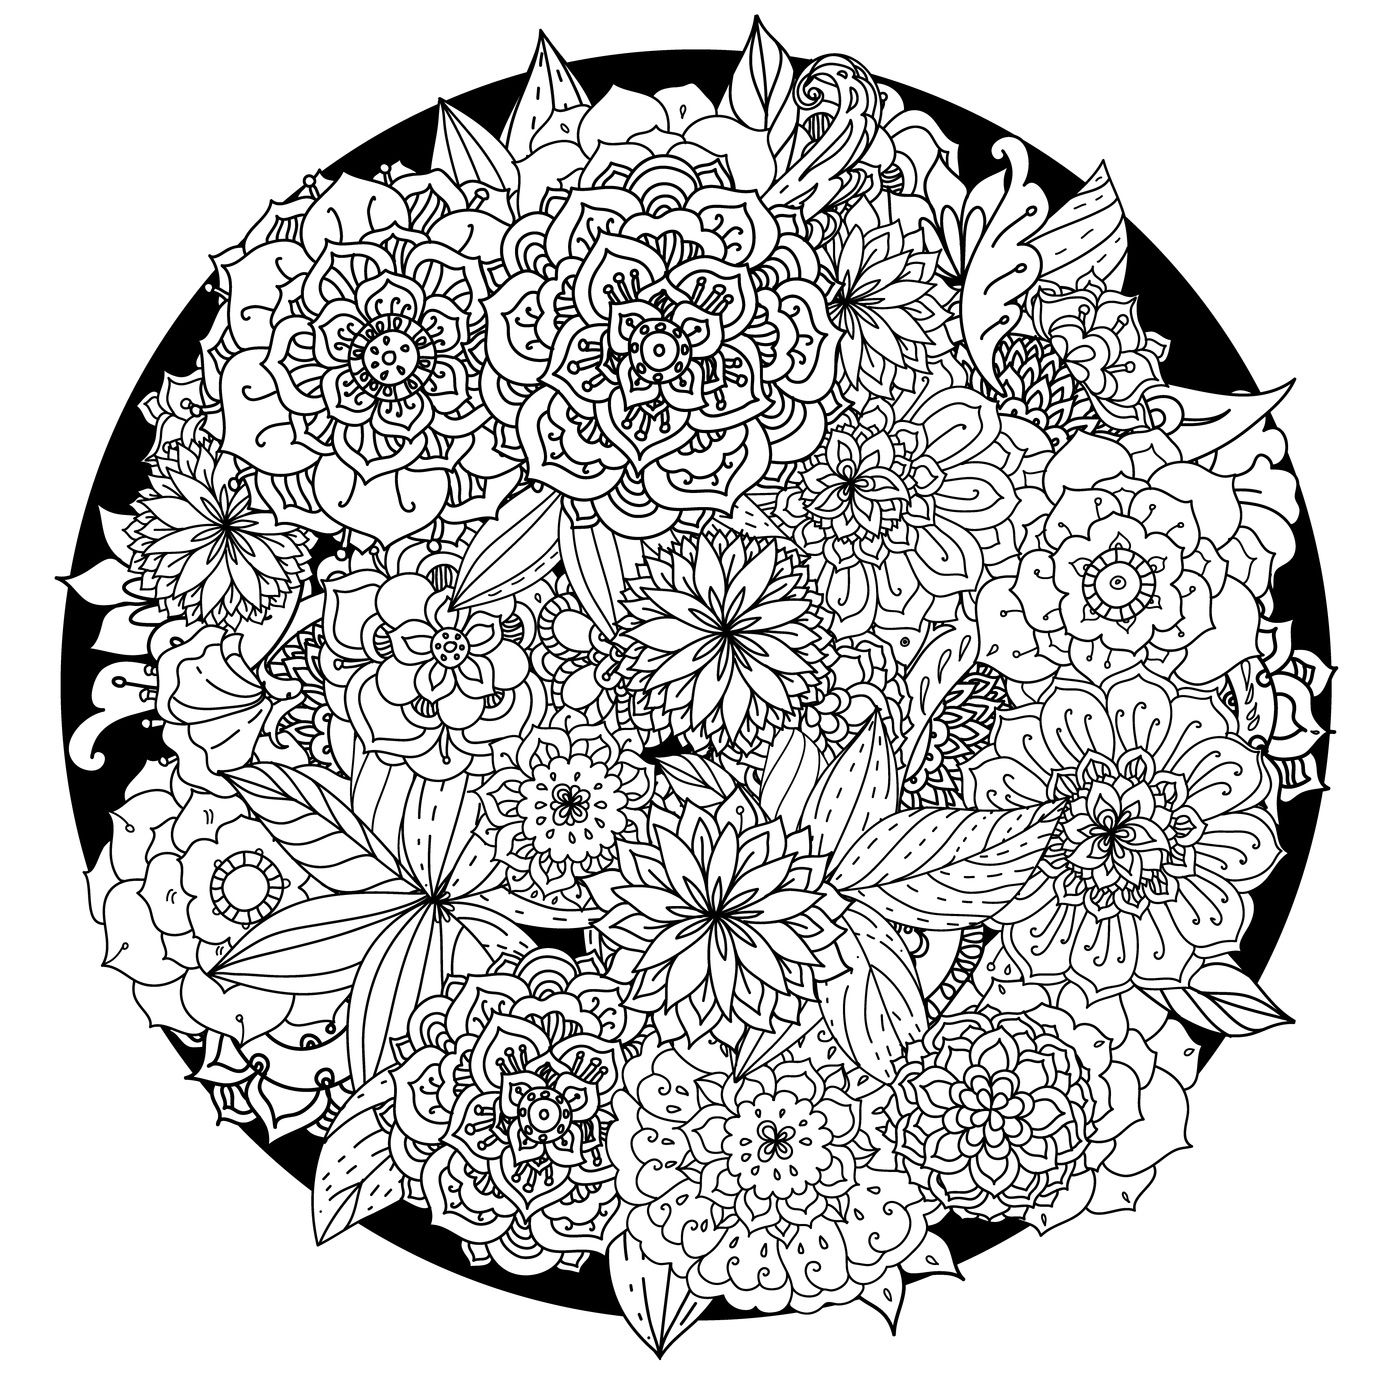 Colouring in for adults why - These Printable Abstract Coloring Pages Relieve Stress And Help You Meditate